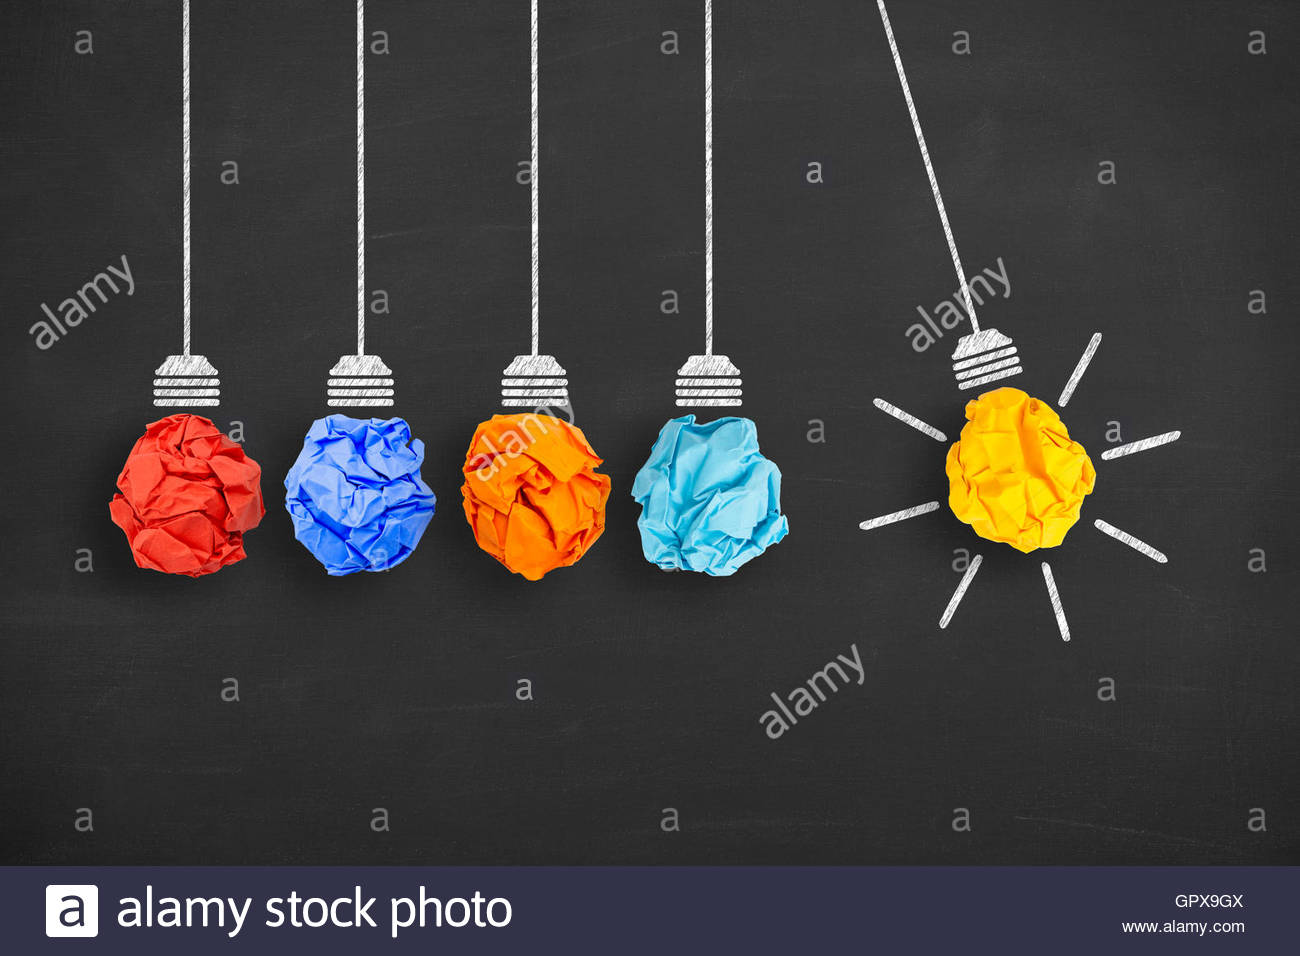 Idea Concept Light Bulb Crumpled Paper on Blackboard - Stock Image